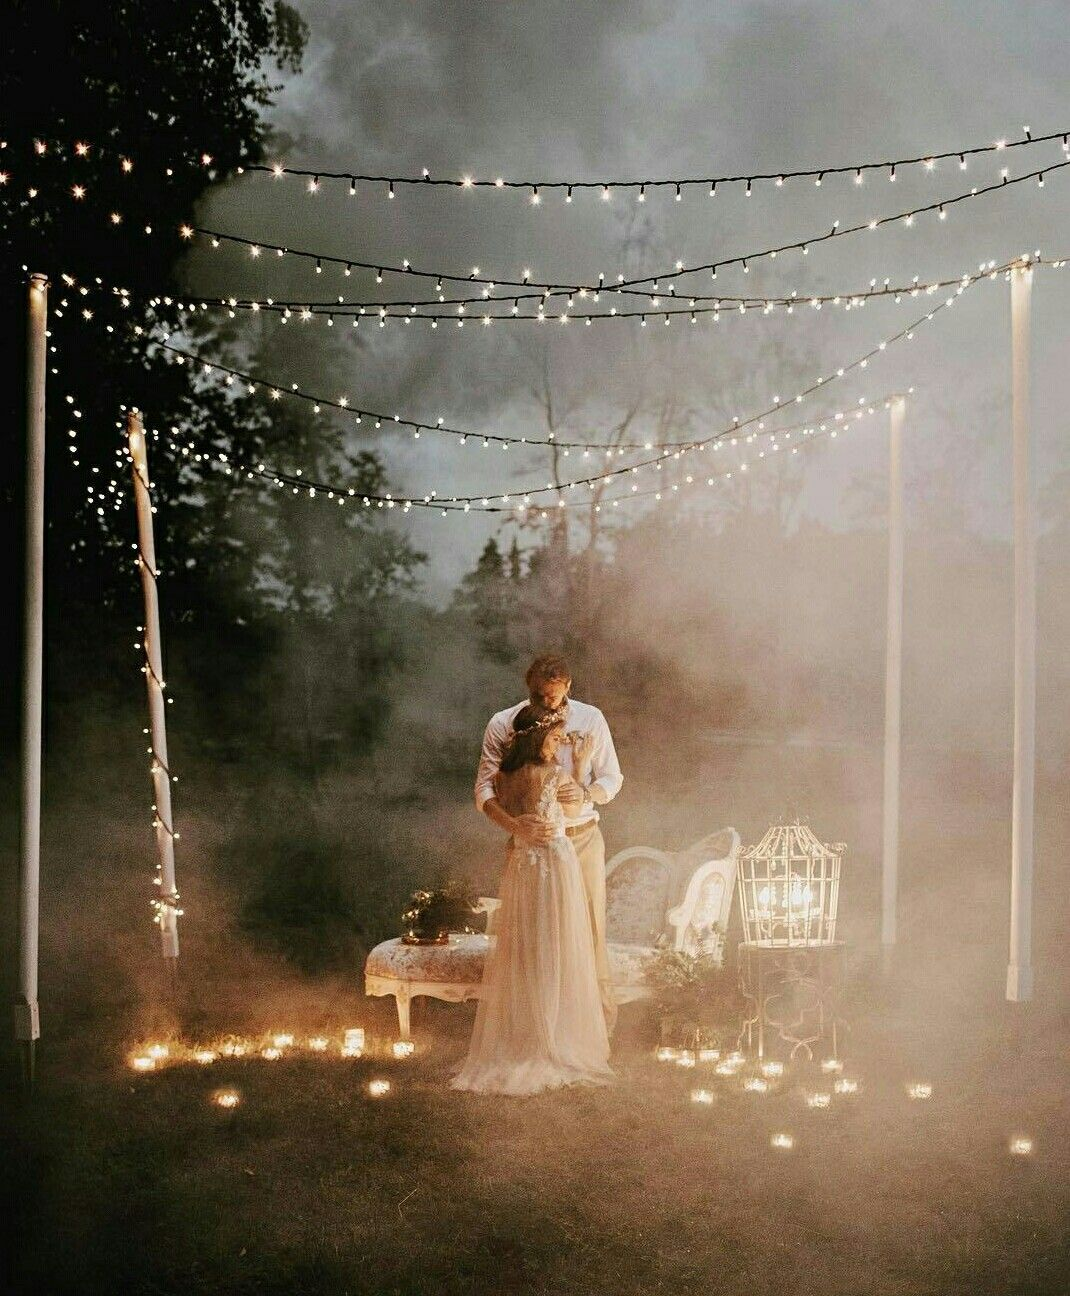 Pin By Amelia Adcox On WEDDINGs! In 2019